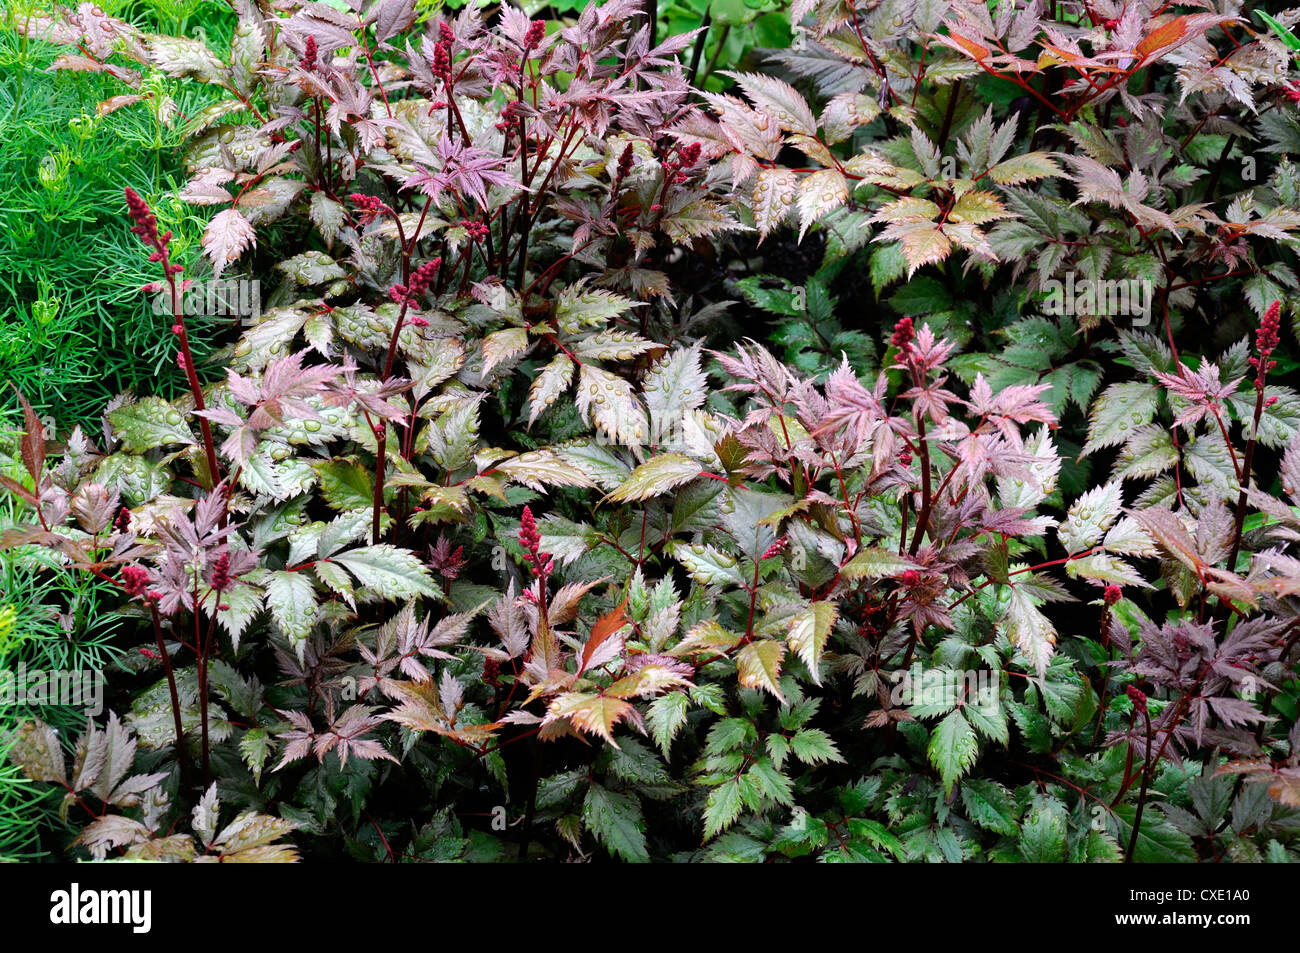 purple flowers feathery plumes perennials attractive leaves foliage - Stock Image